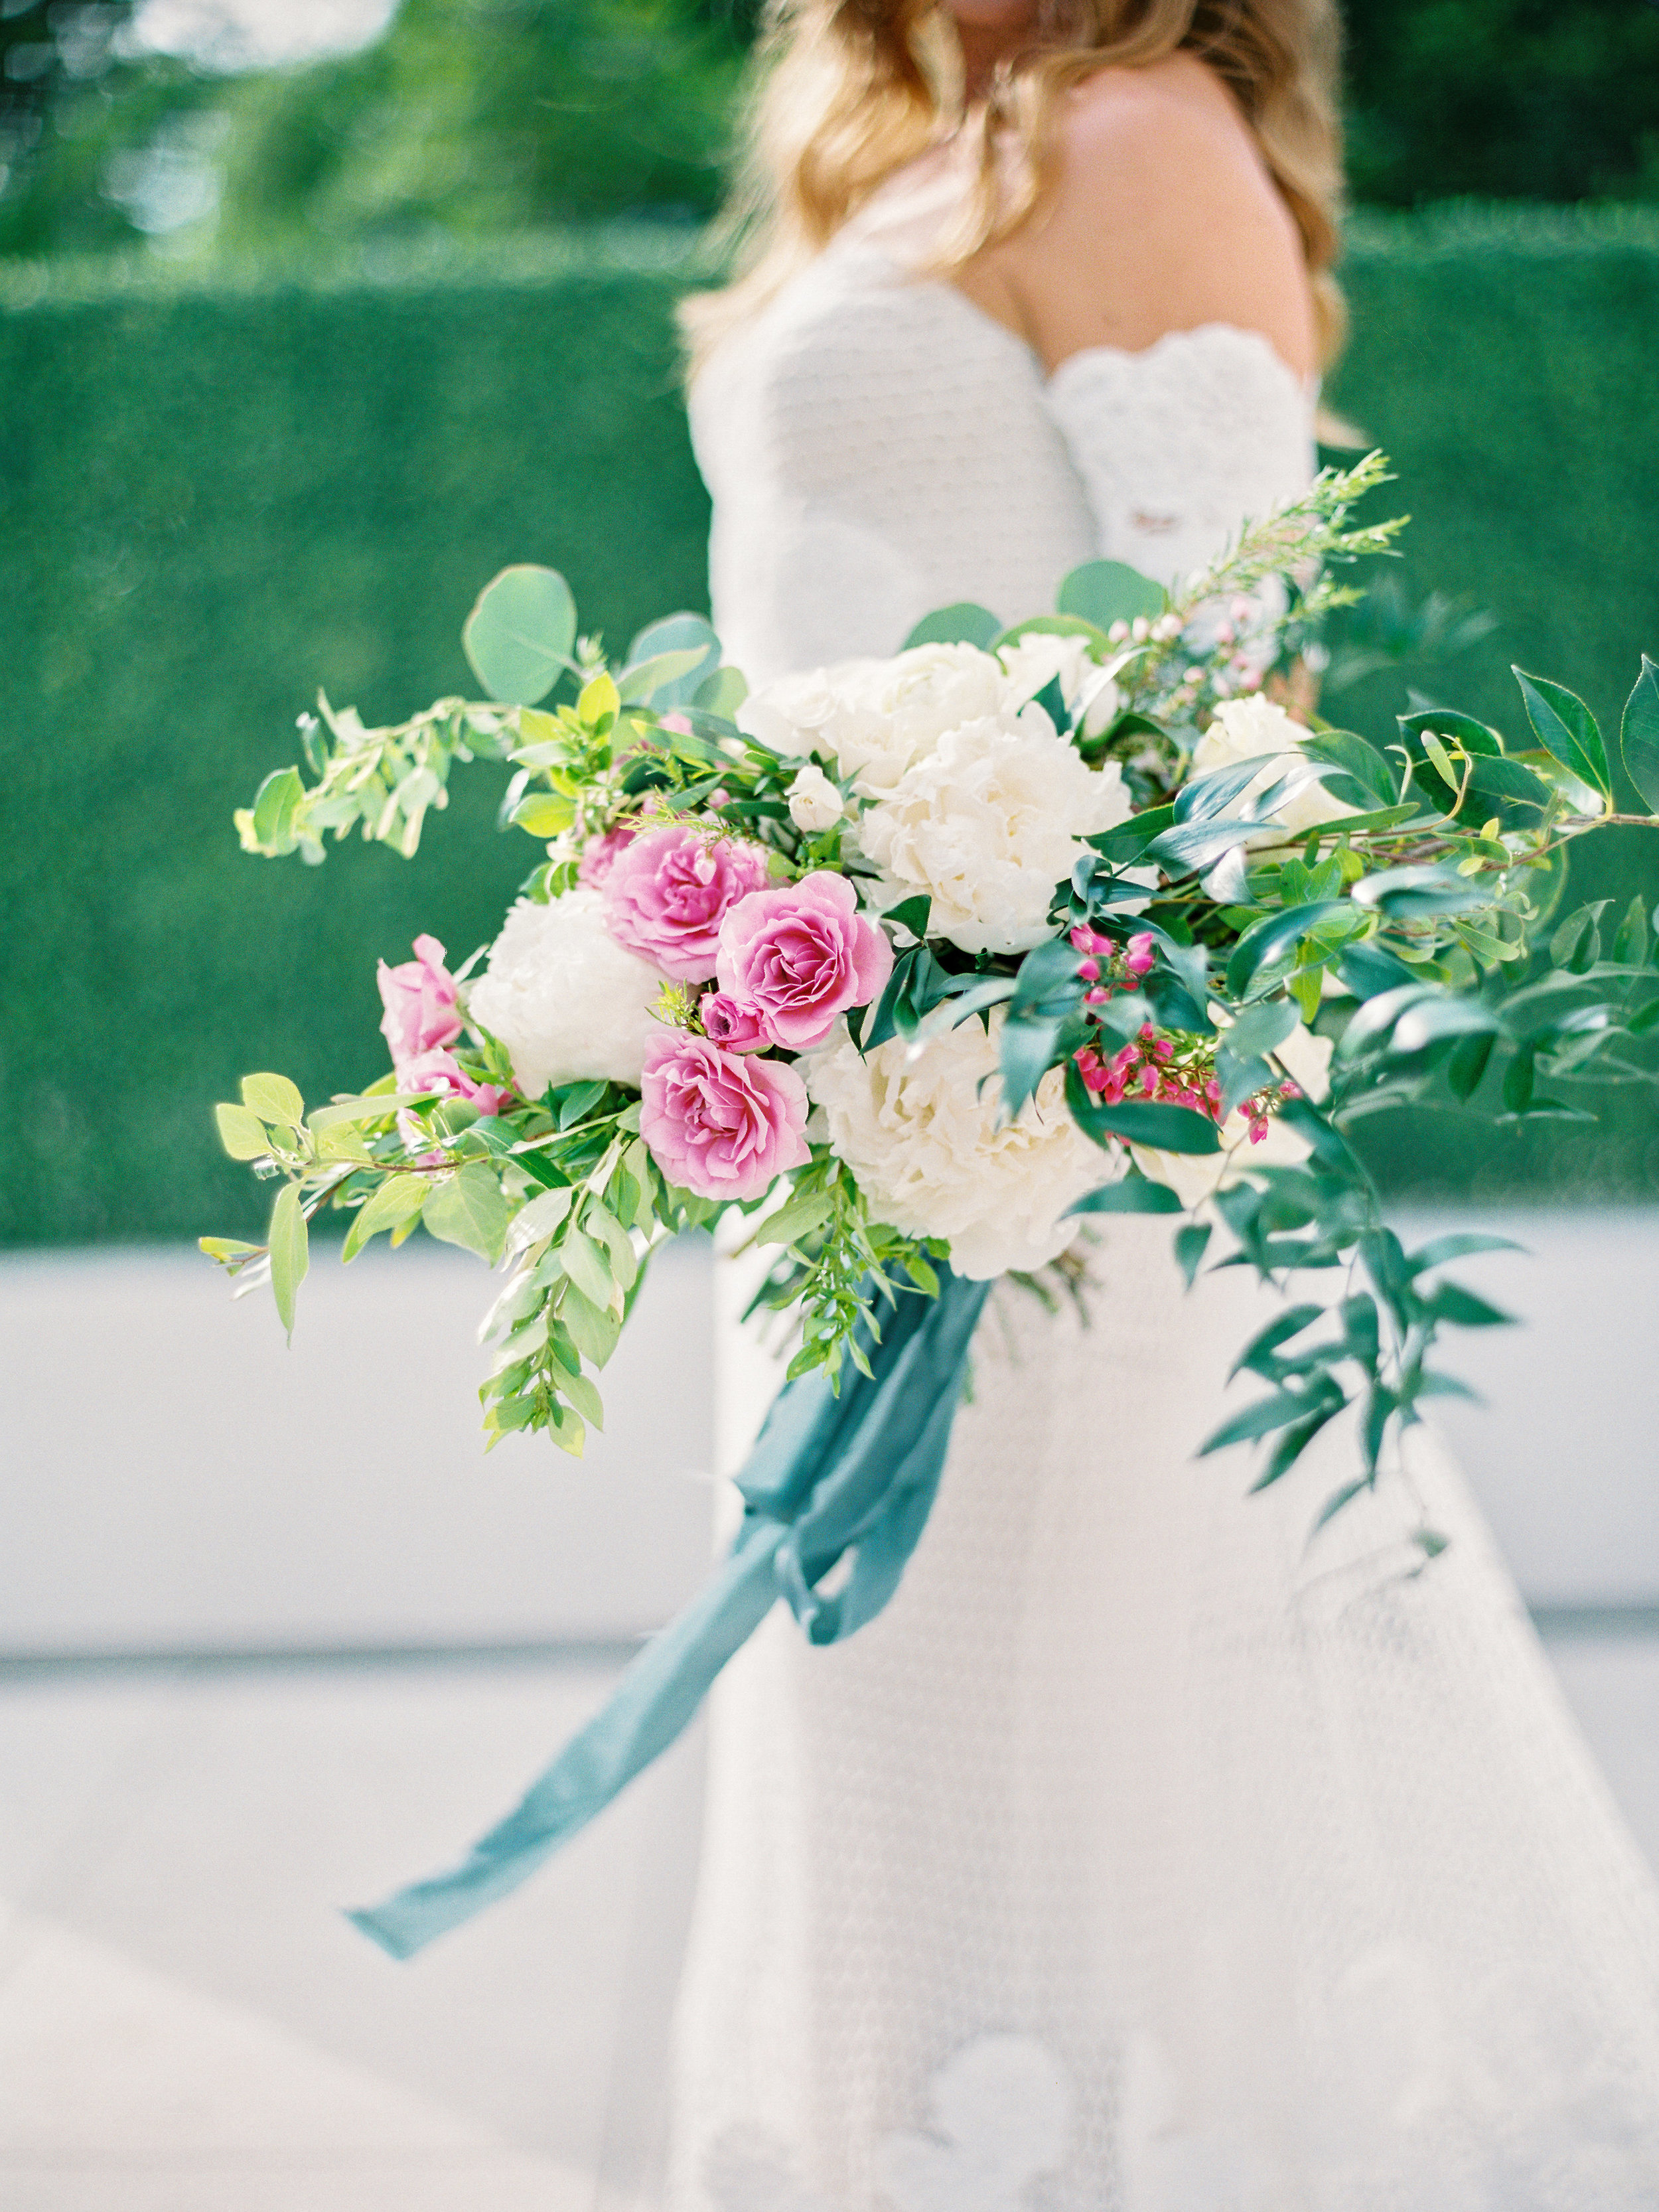 Noelle + Rich's Camby Vow Renewal - Bridal Bouquet with Peonies, spray roses, and wild greenery